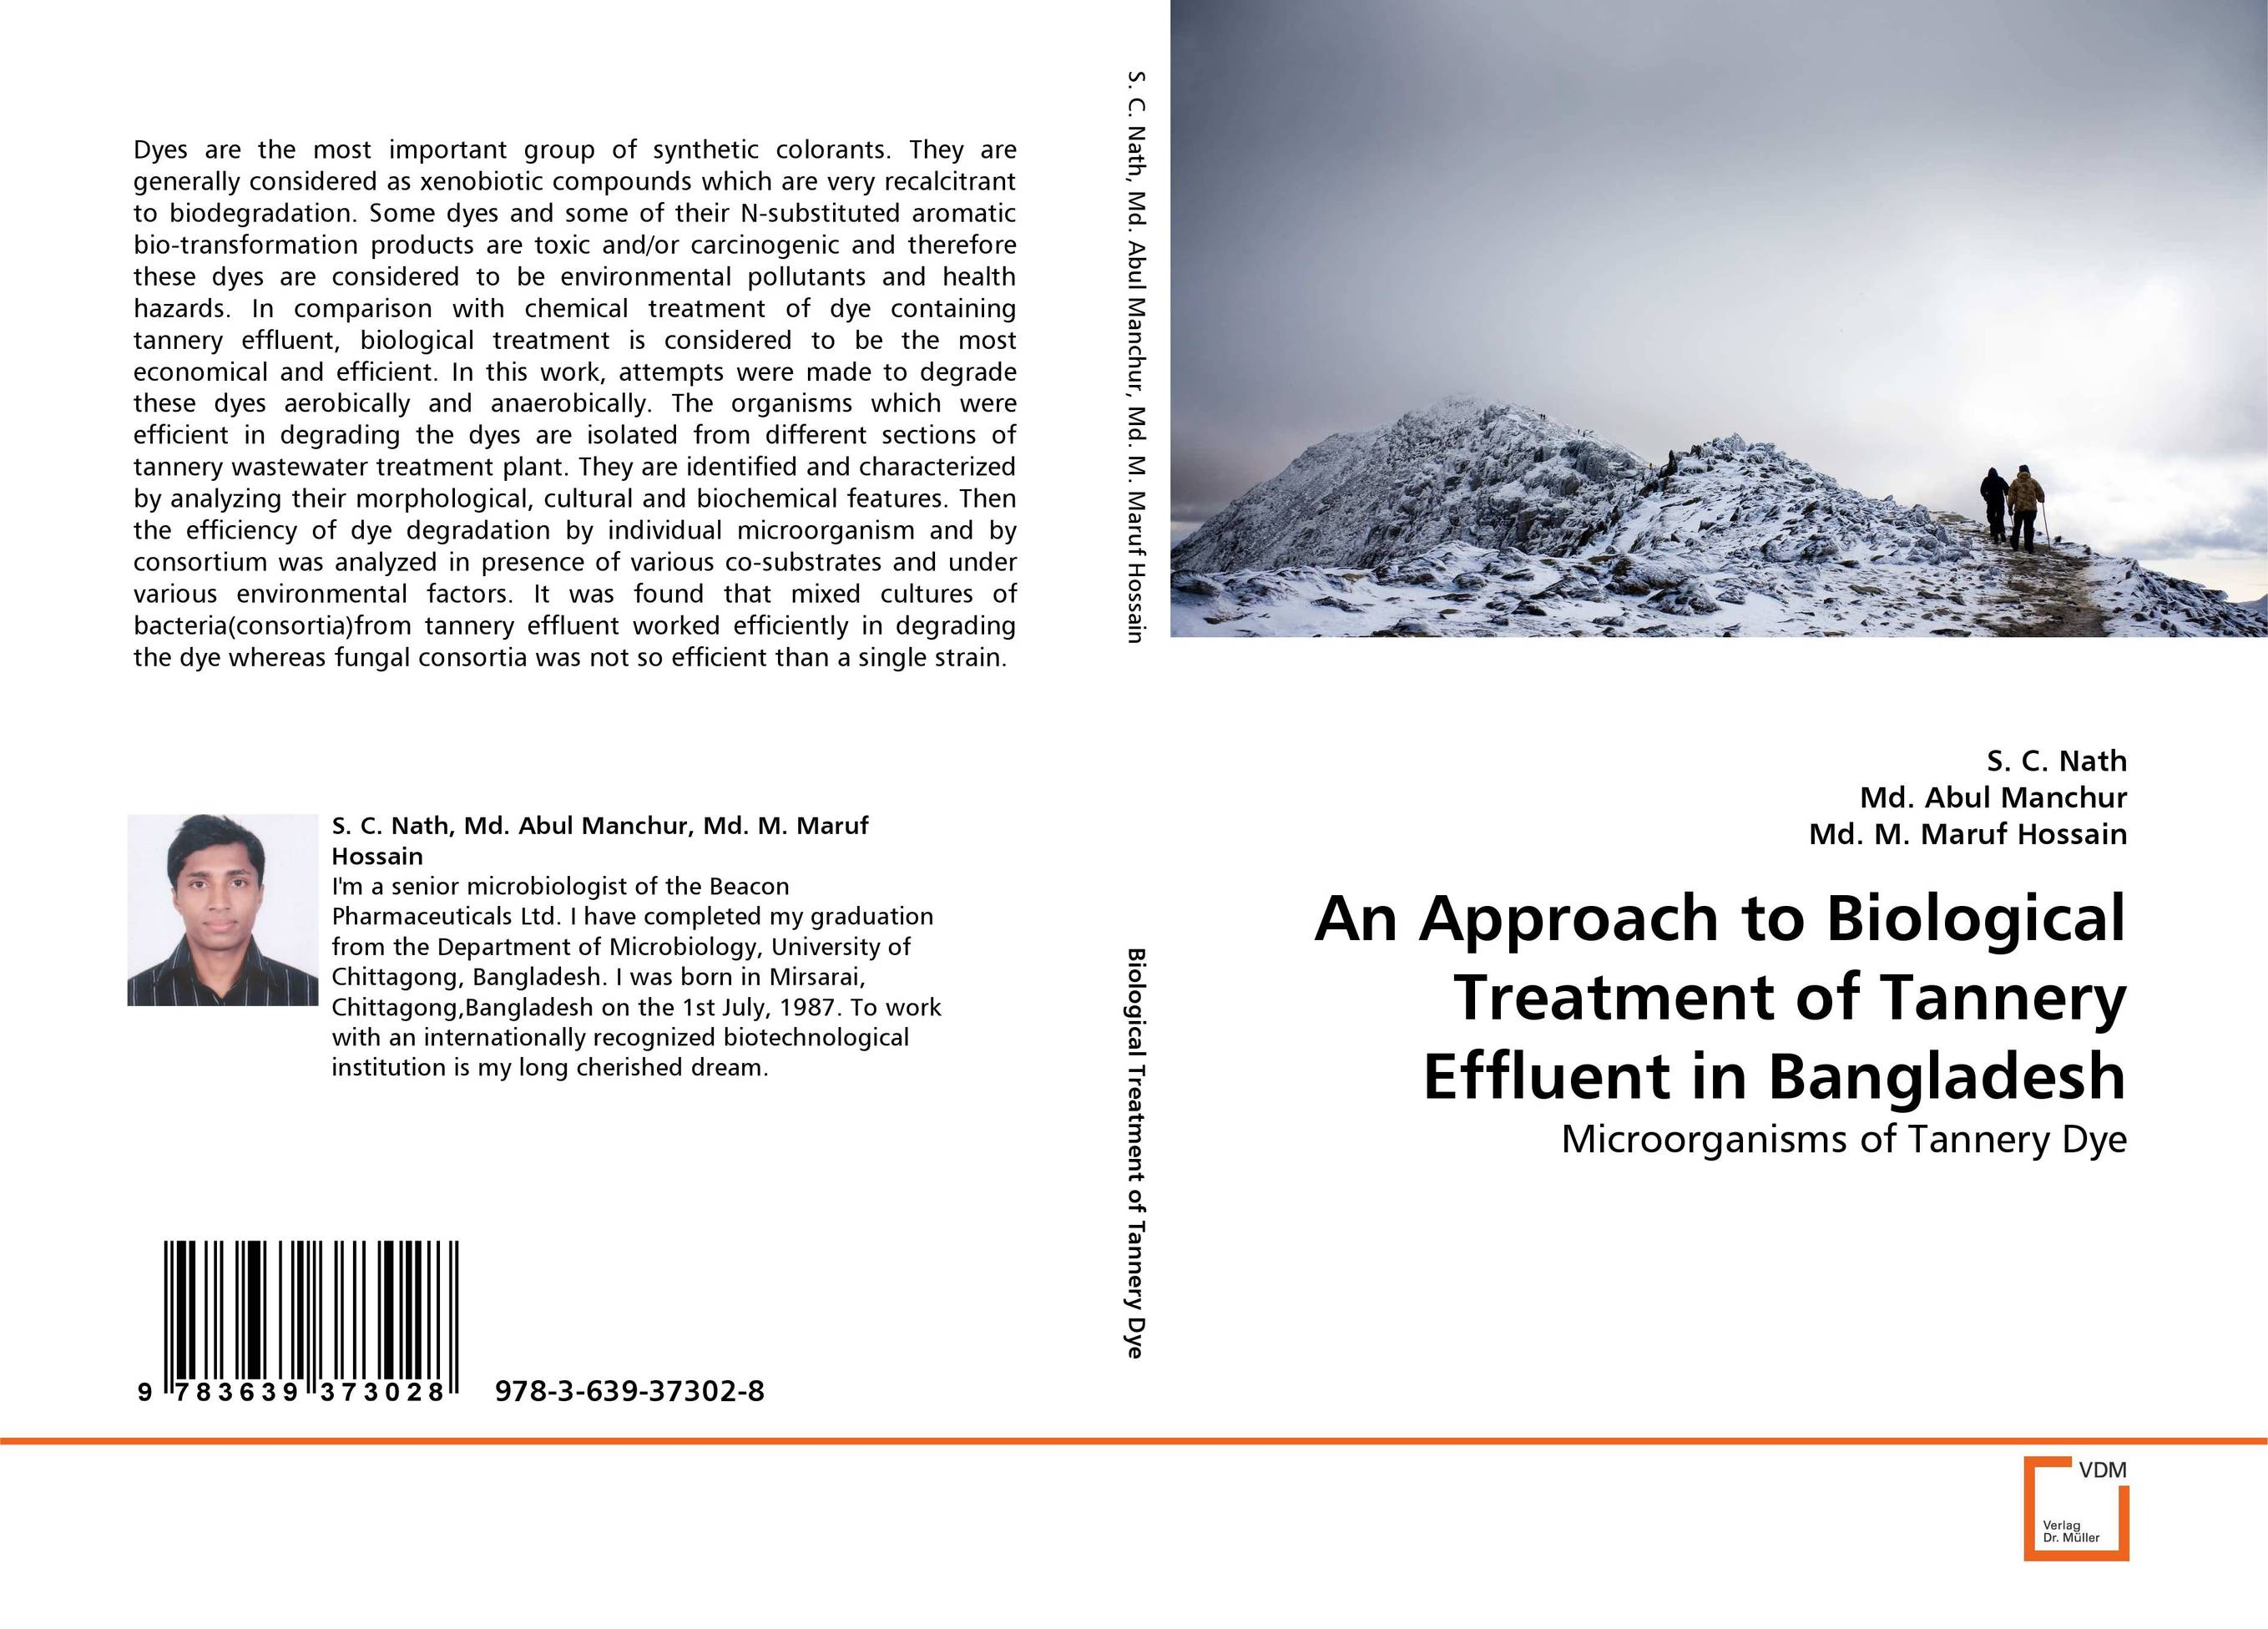 An Approach to Biological Treatment of Tannery Effluent in Bangladesh genotoxic effects of tannery industry effluent in labeo rohita